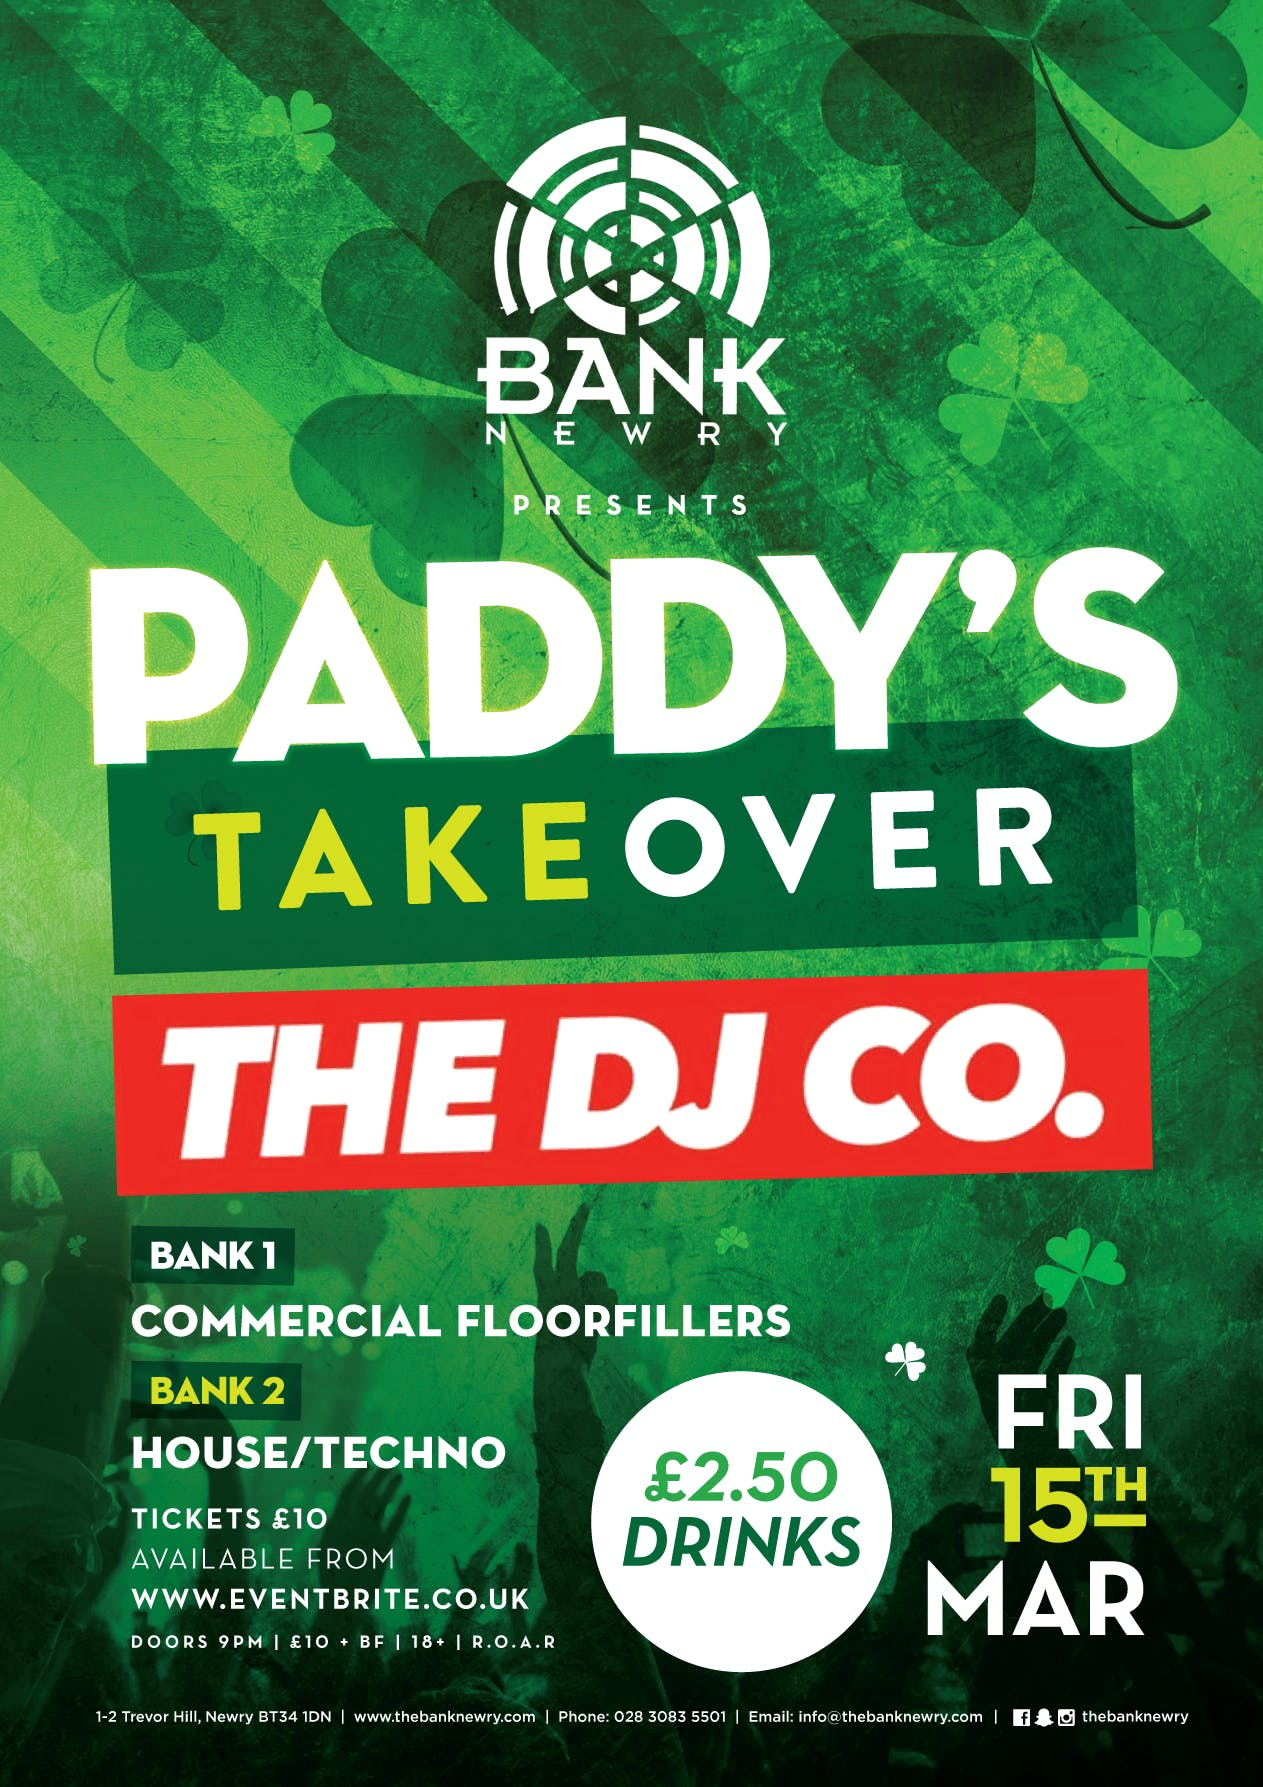 ☘️ PADDY'S TAKEOVER ☘️